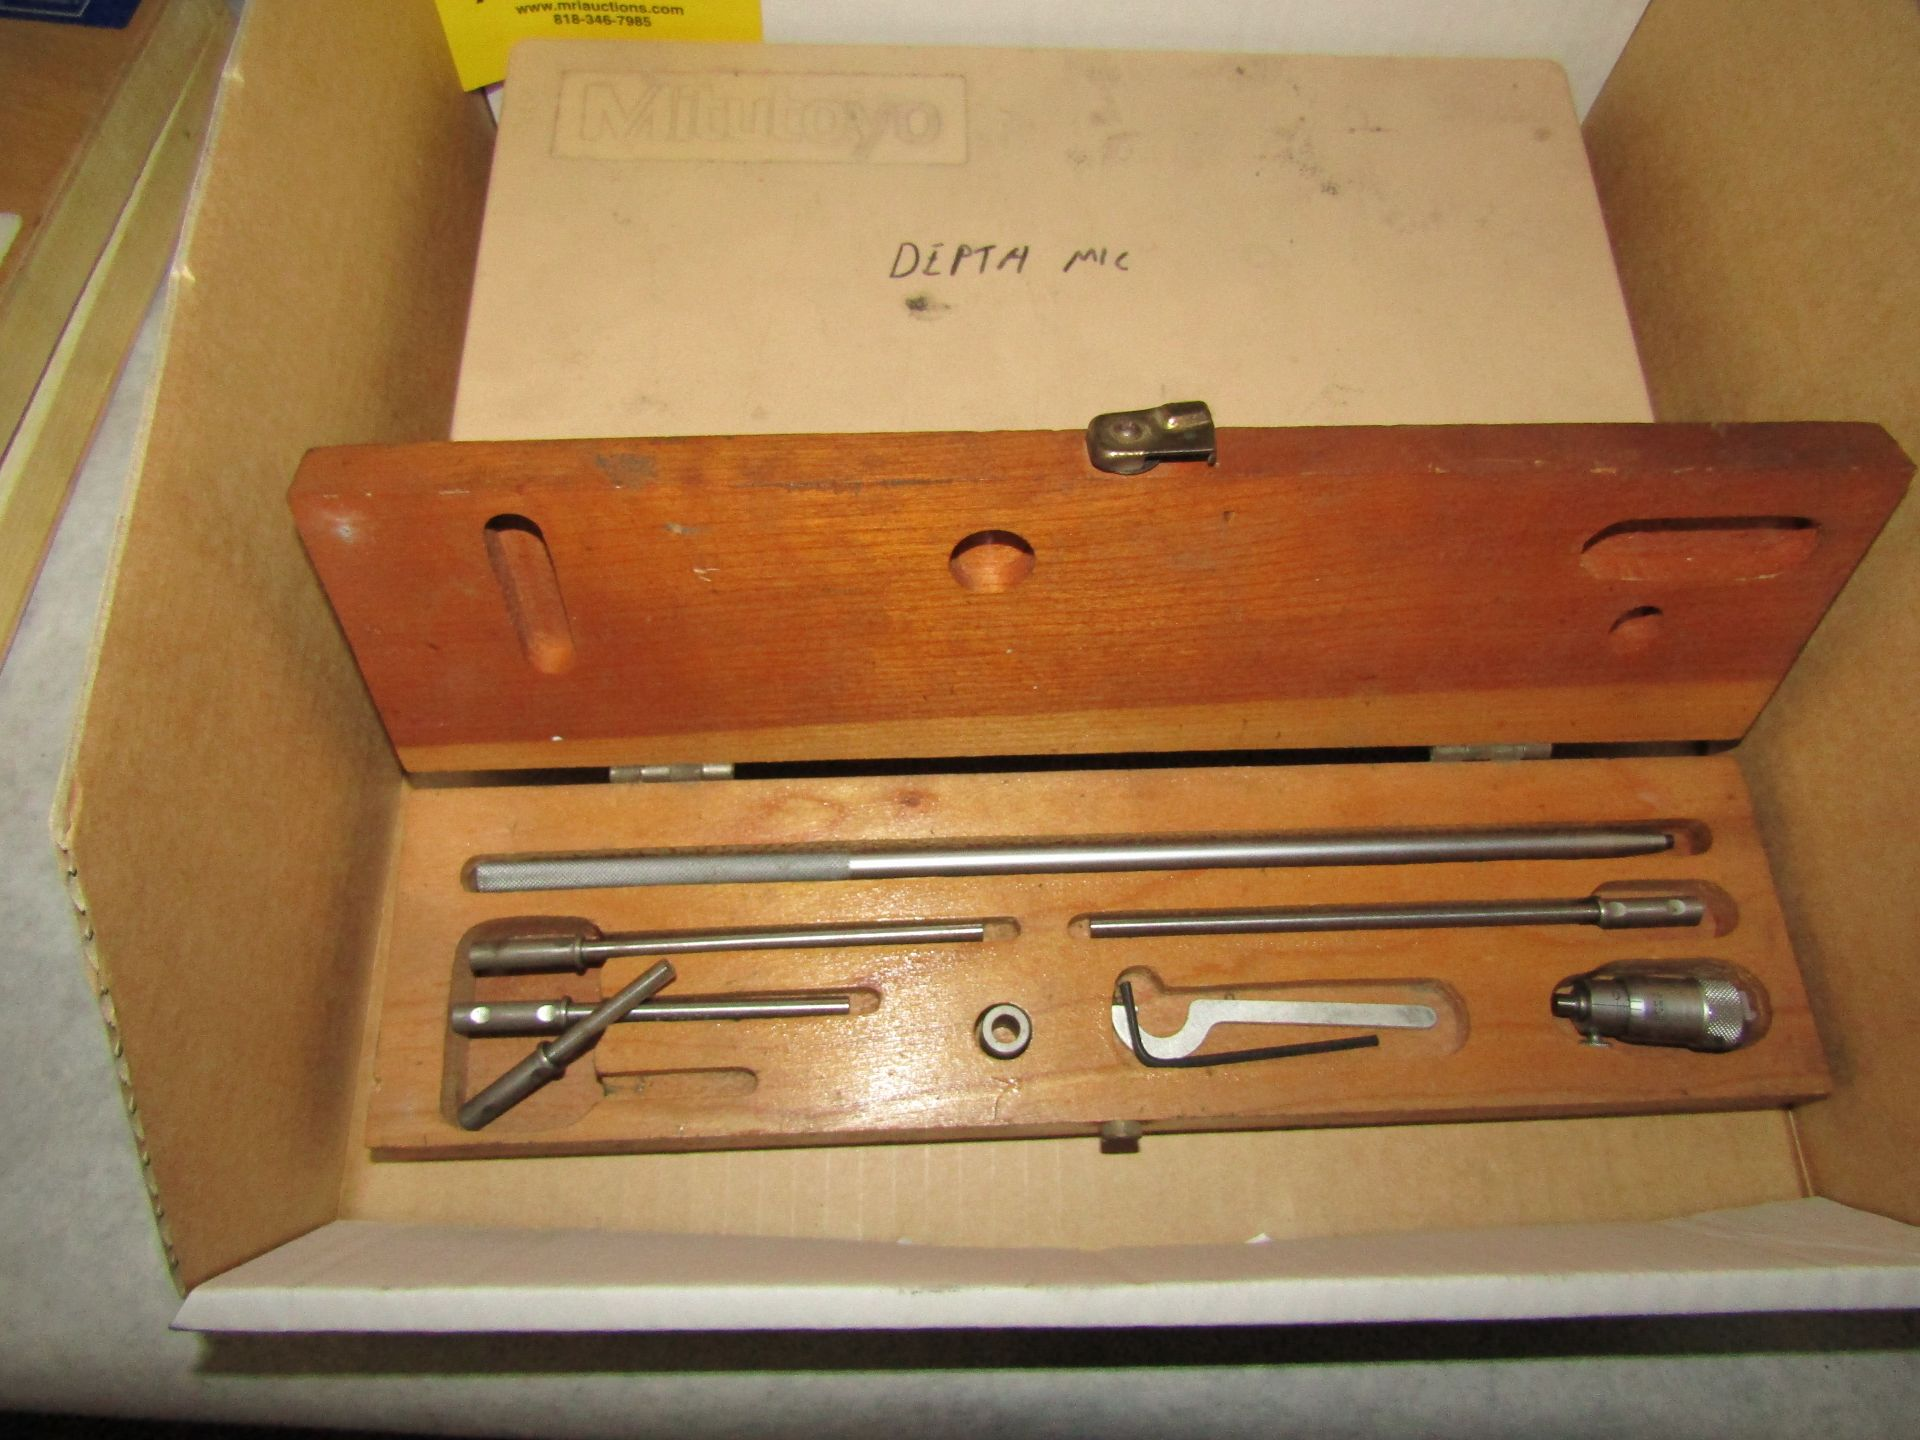 Lot 39 - Lot to Include: (1) Mitutoyo Depth Micrometer, and (1) Misc. Bore Micrometer